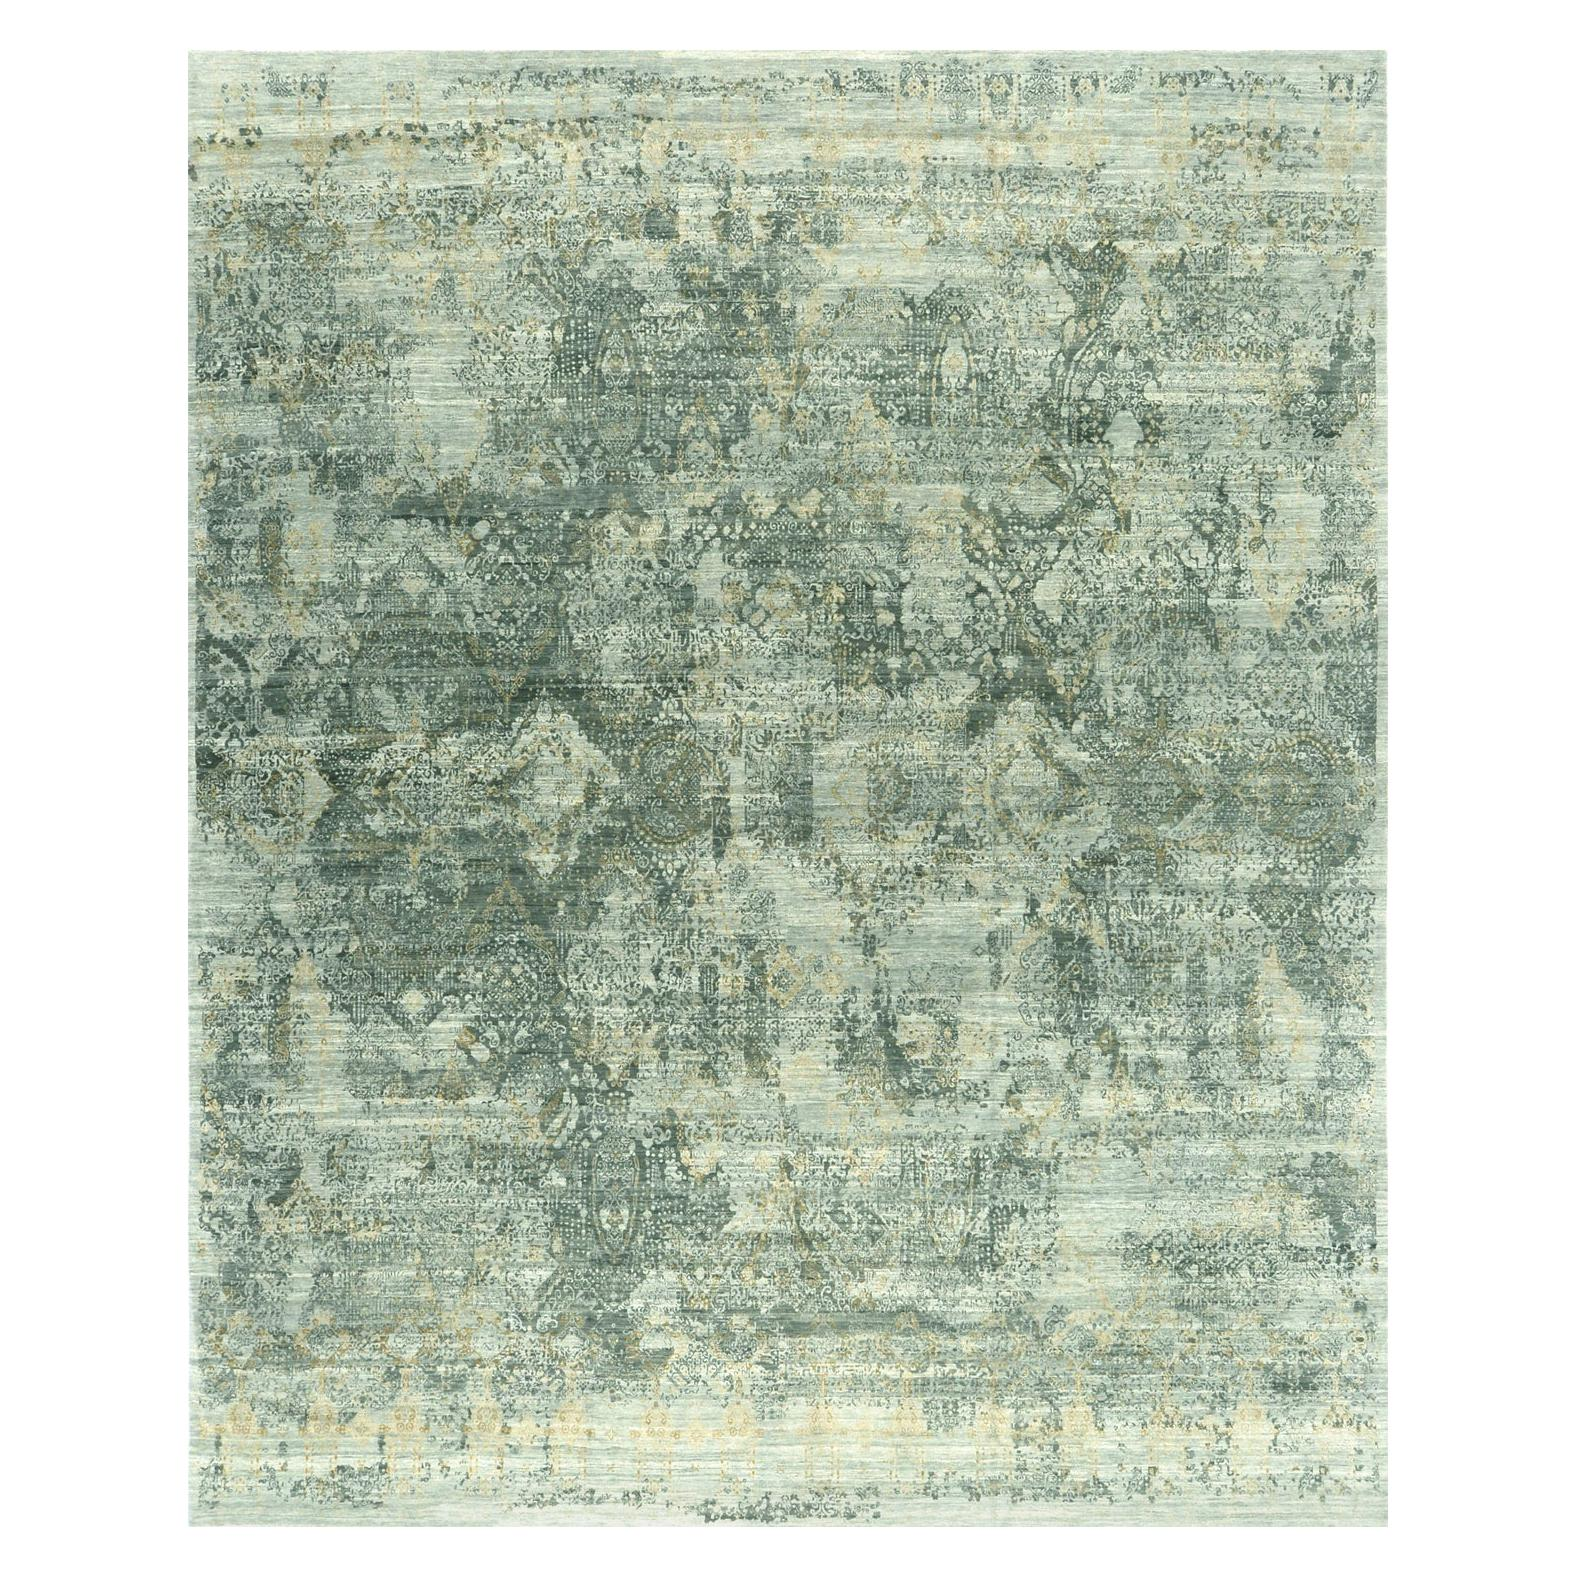 Transitional Design Rug Allure Fiore by Mehraban Rugs